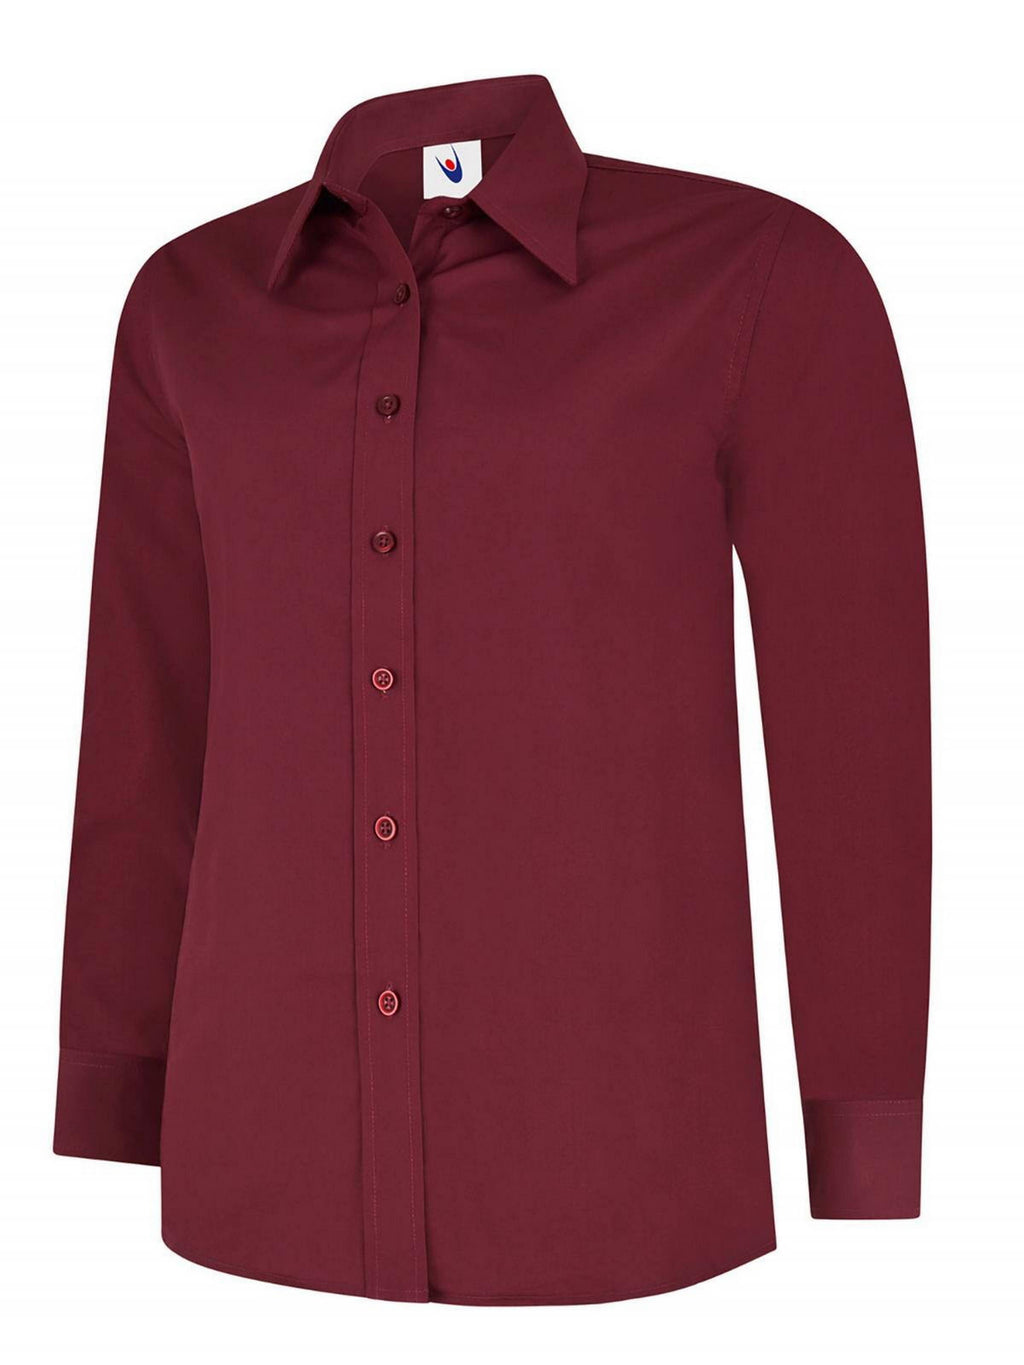 Ladies Long Sleeve Poplin Blouse (B711 (UC711))